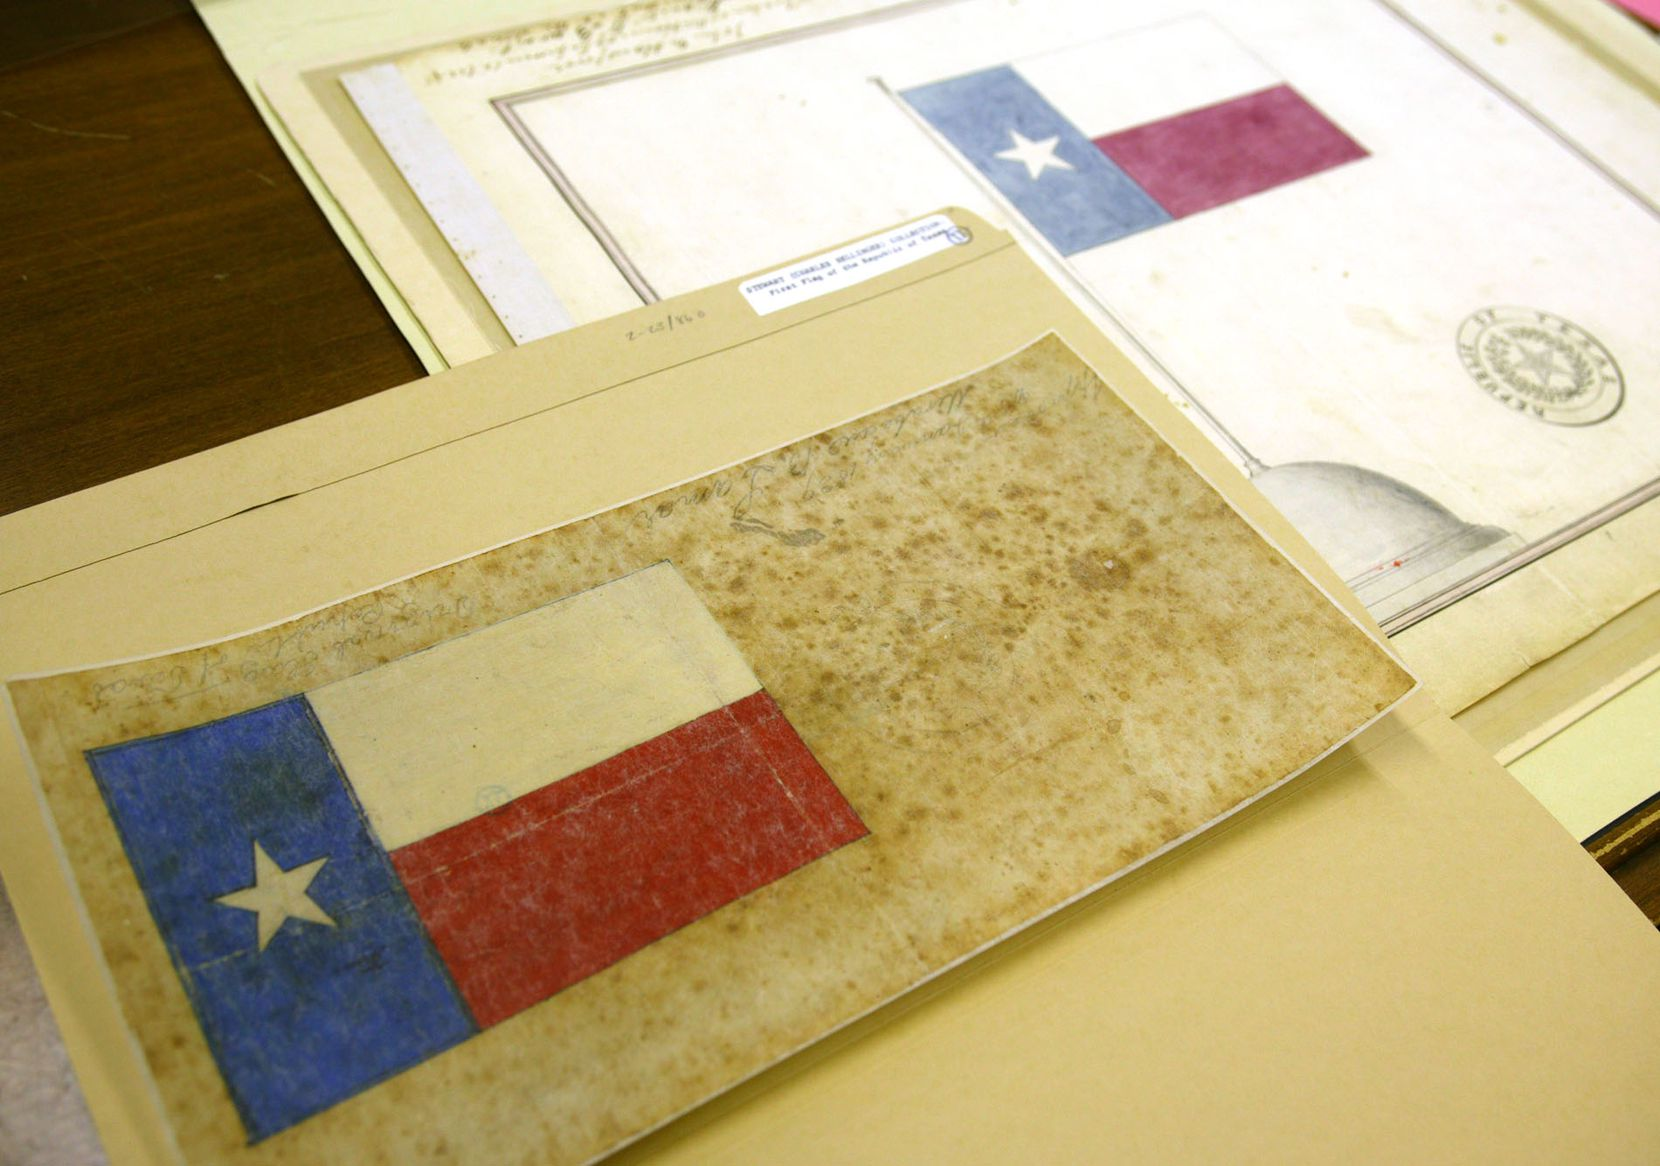 Two historic sketches by Charles B. Stewart and Peter Krag have been at the center of a debate over who was the original designer of the Texas flag.